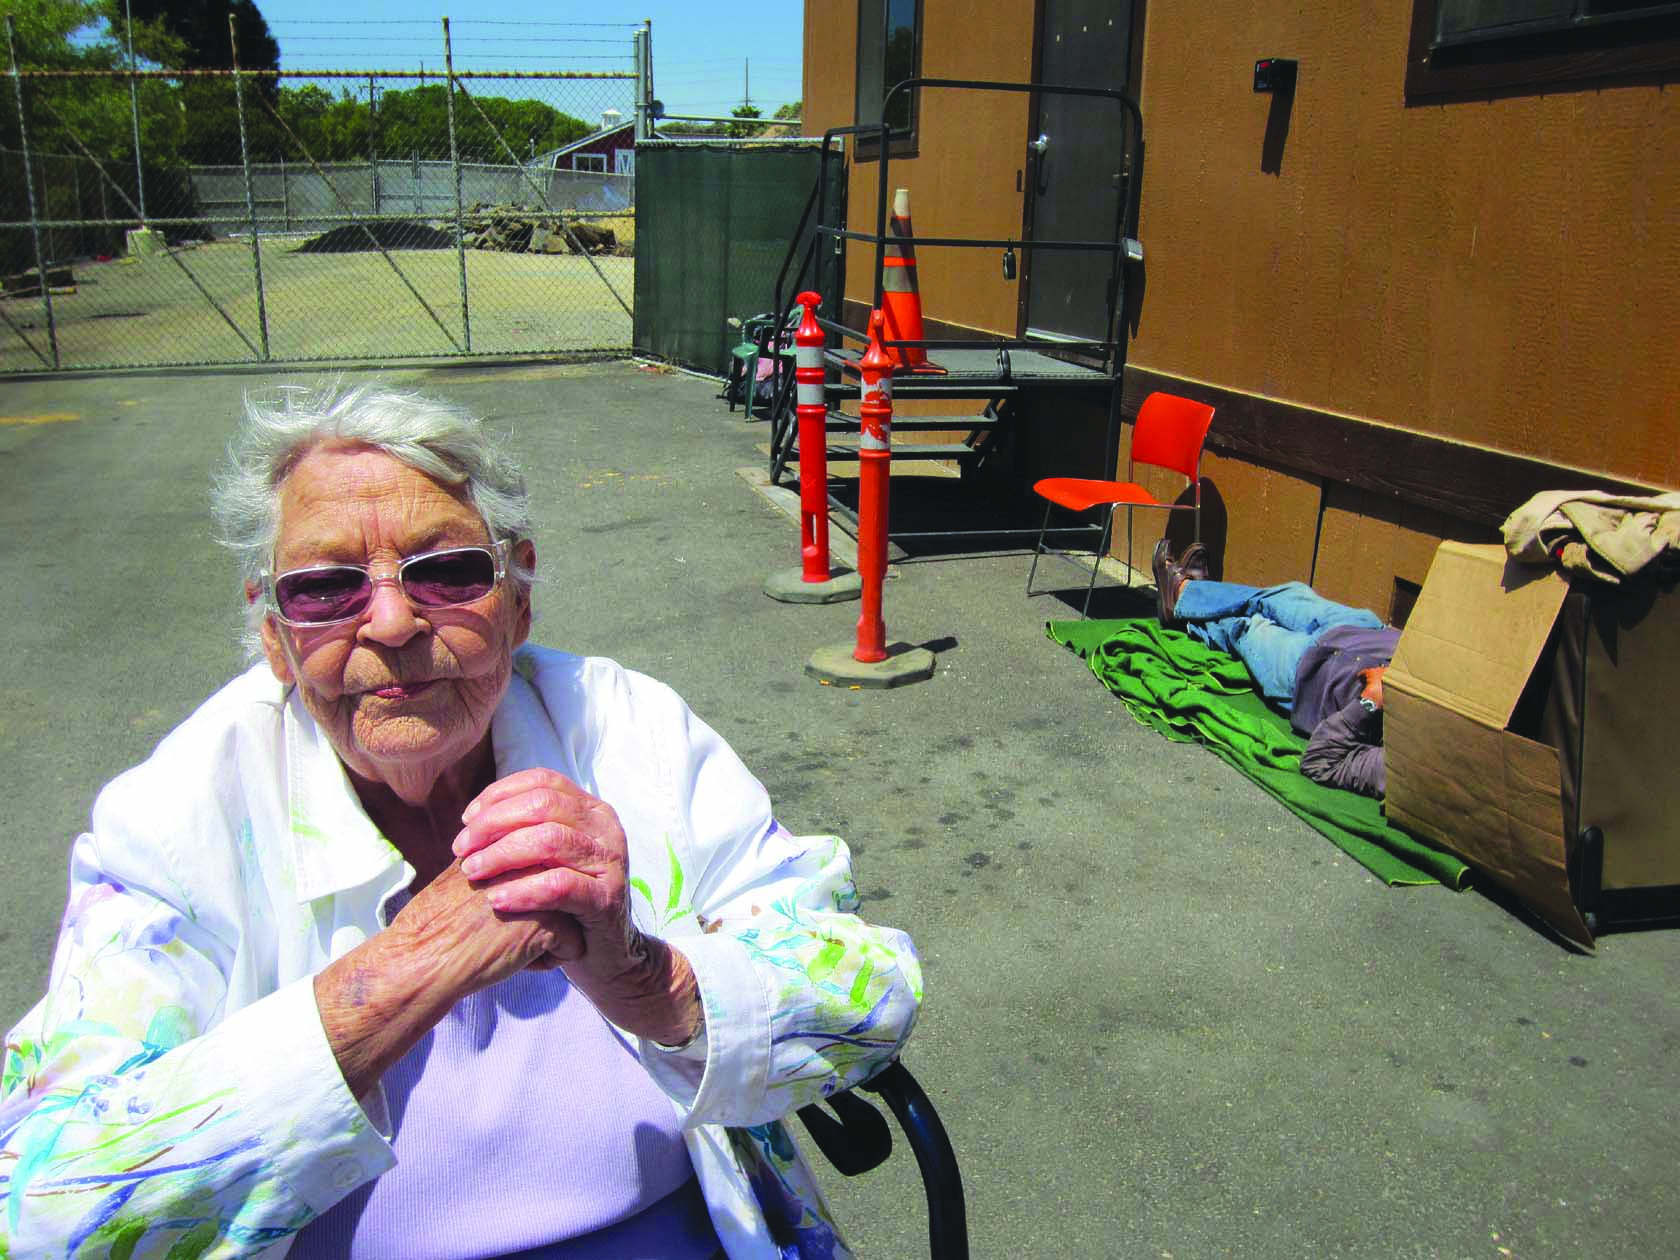 Friendship Shelter supporter Jean Raun outside the city's homeless shelter in Laguna Canyon and location of the organization's proposed supportive housing project.